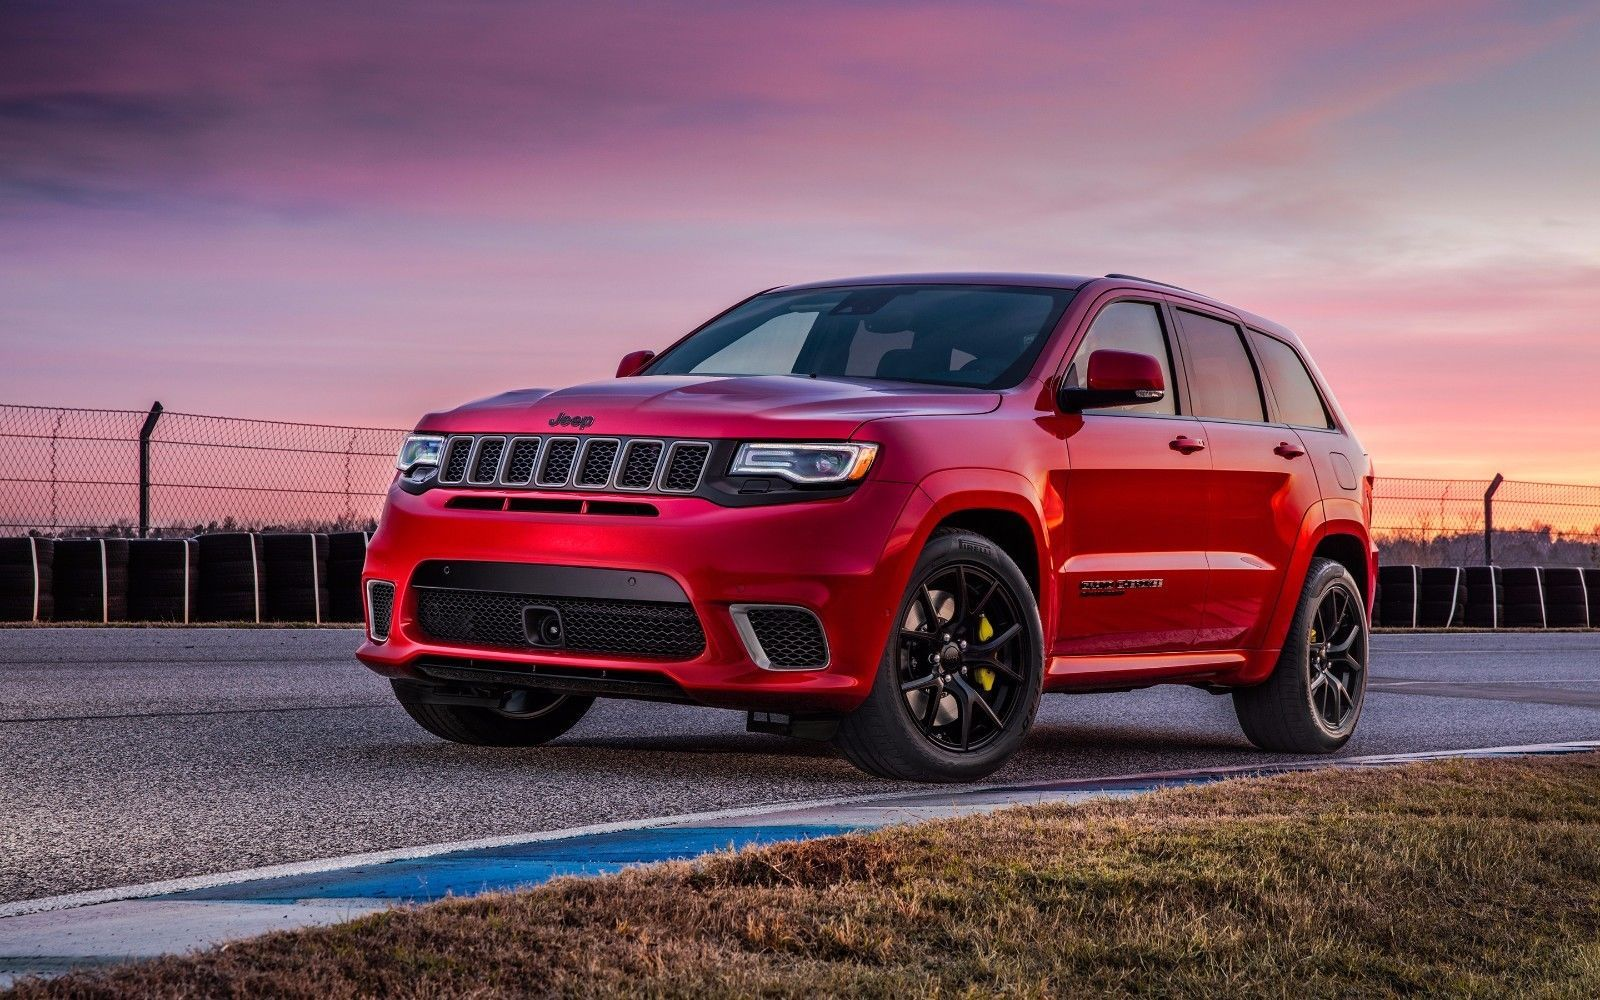 15 2018 Jeep Grand Cherokee Trackhawk Hd Art Poster 24inx18in 36inx24in Print Ebay Col Jeep Grand Cherokee Srt Jeep Grand Cherokee New Jeep Grand Cherokee